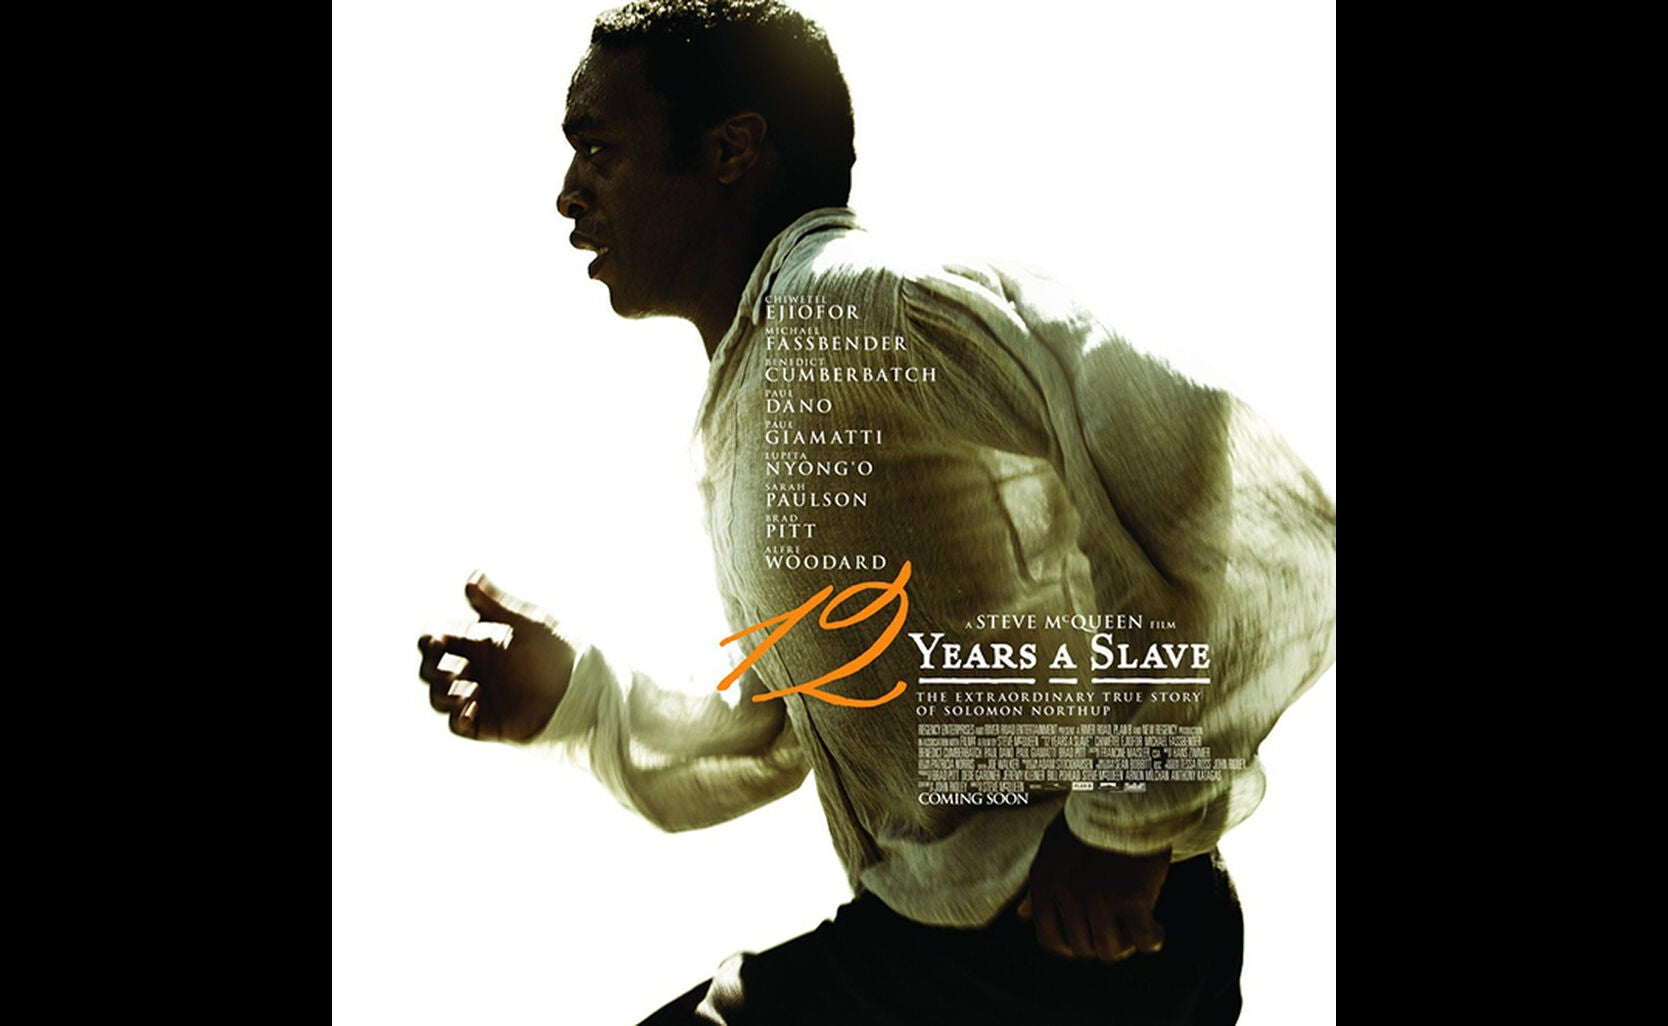 12 years a slave thesis statement Twelve years a slave summary twelve years a slave summary only available on studymode 9-12-03), and was deprived of most rights ordinarily held by free persons.